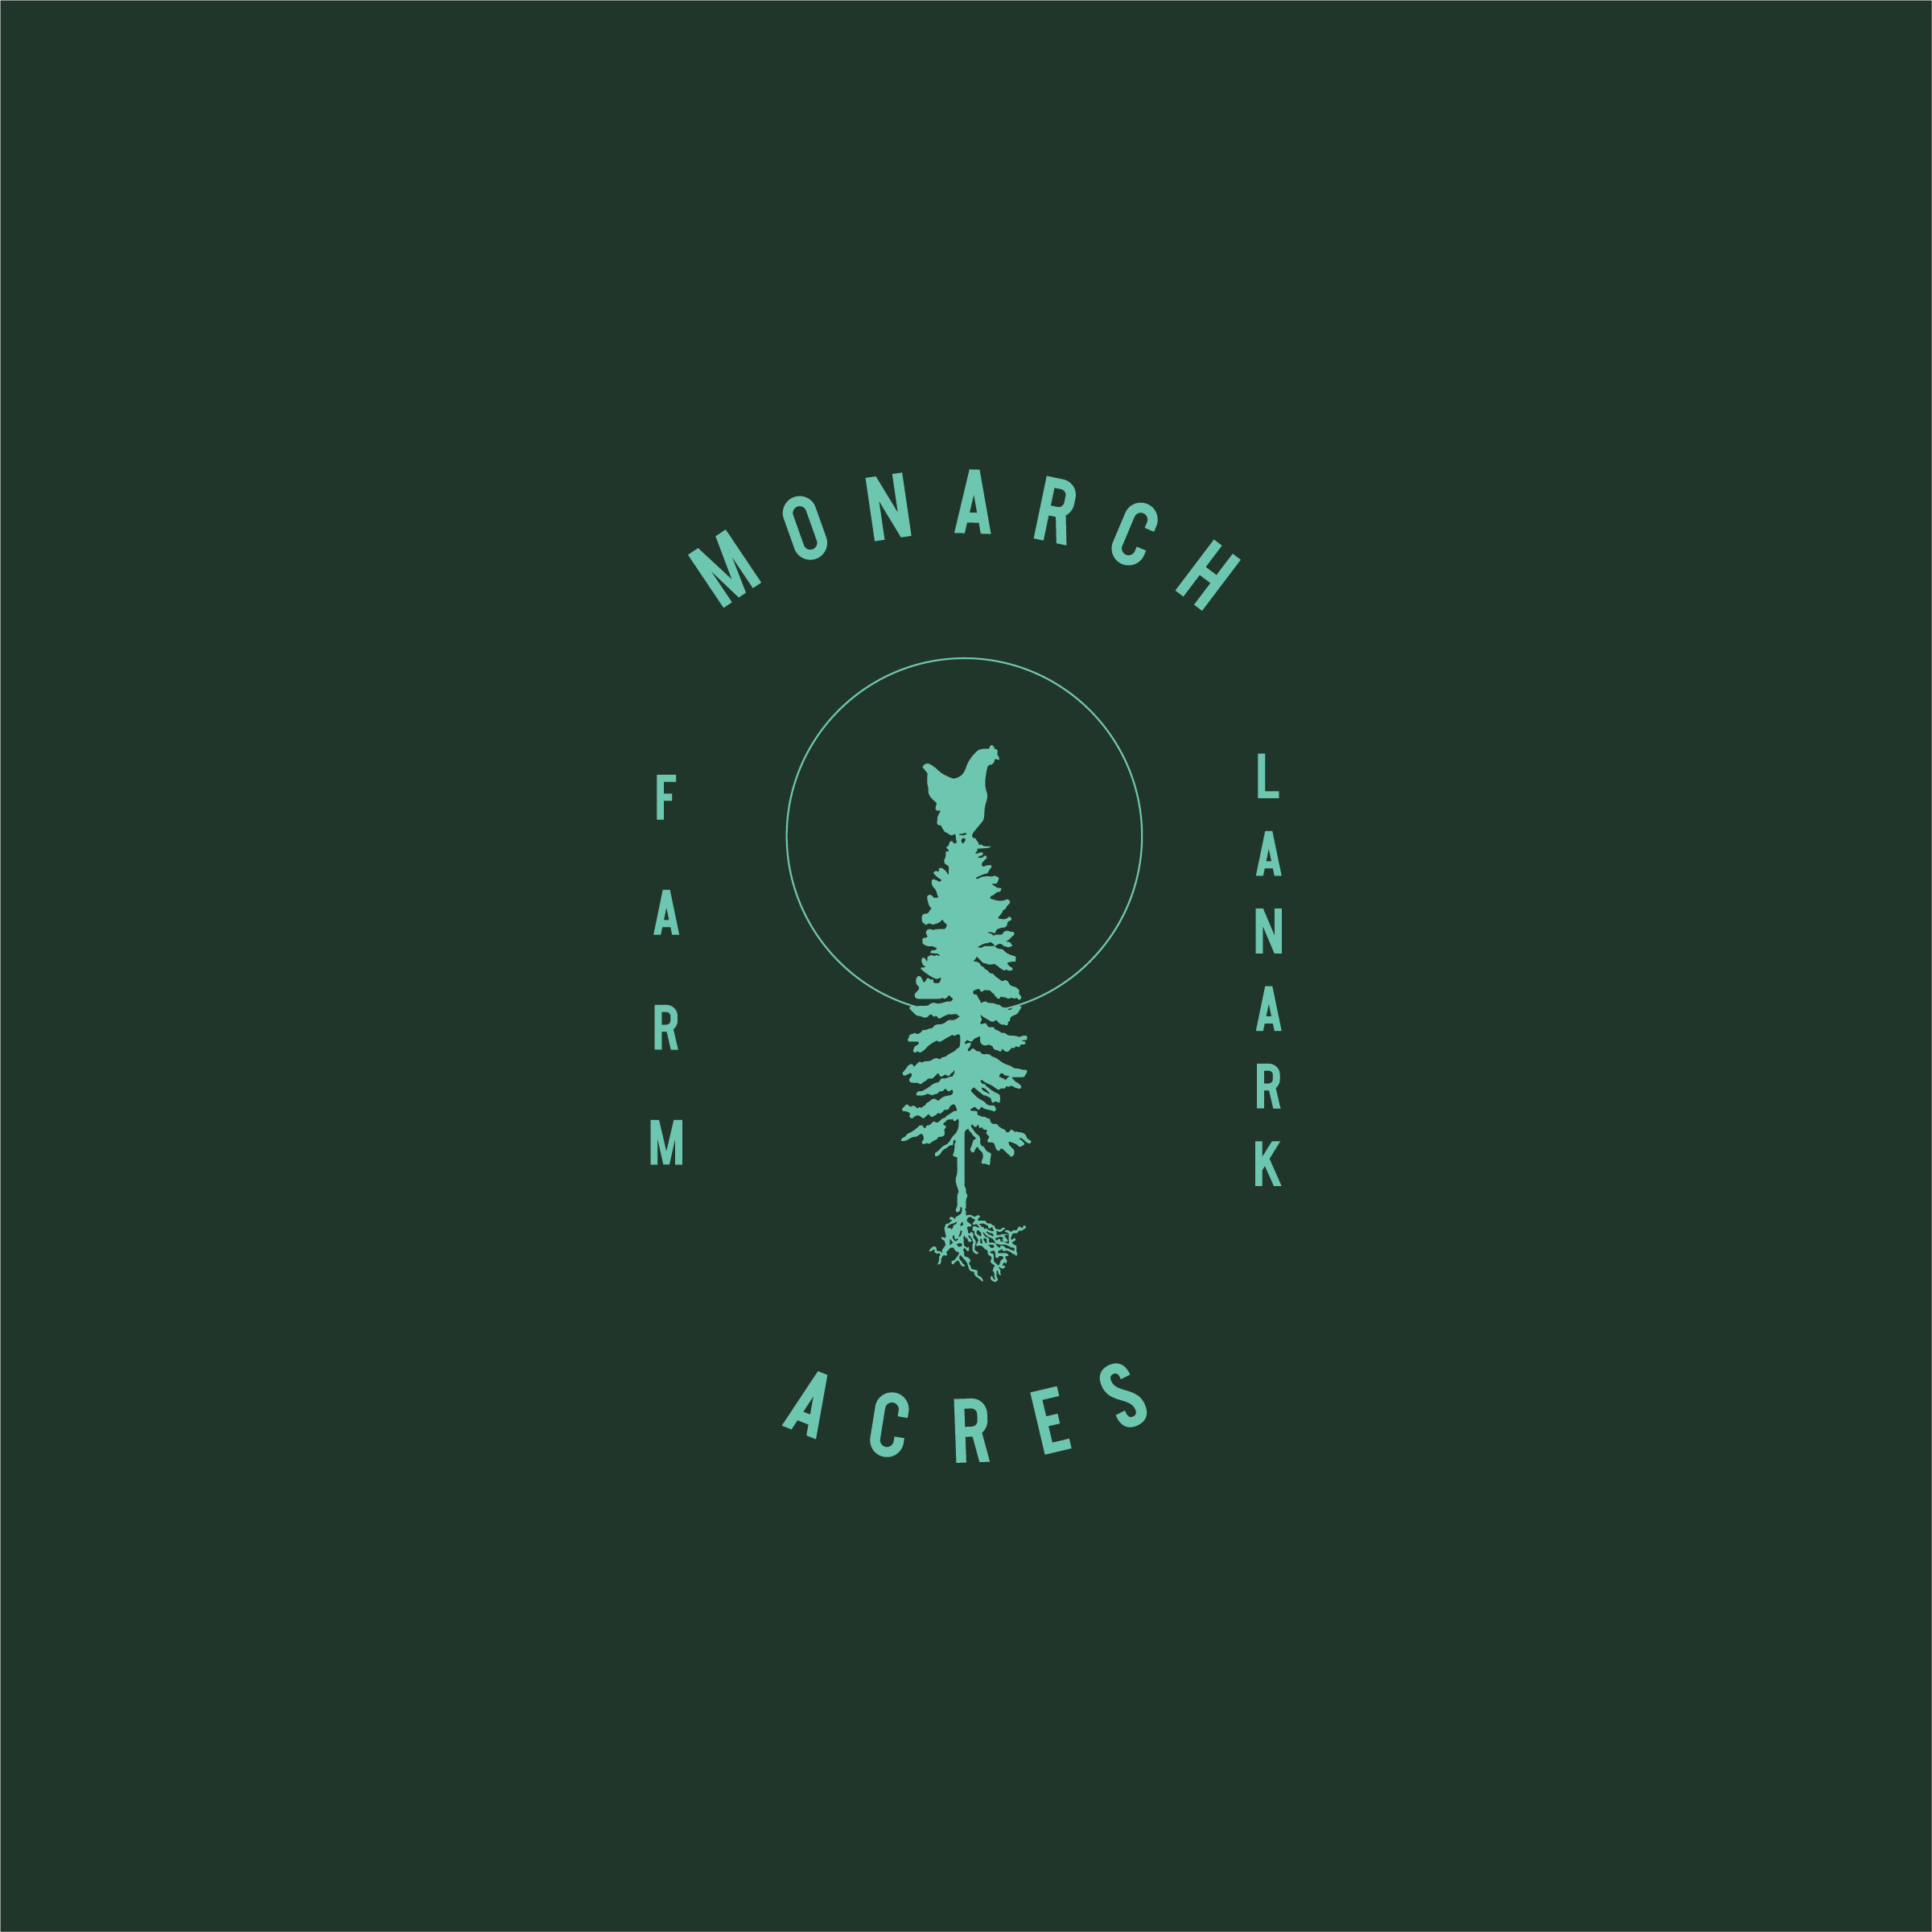 MONARCH_ACRES-outlined-square-04-04.png